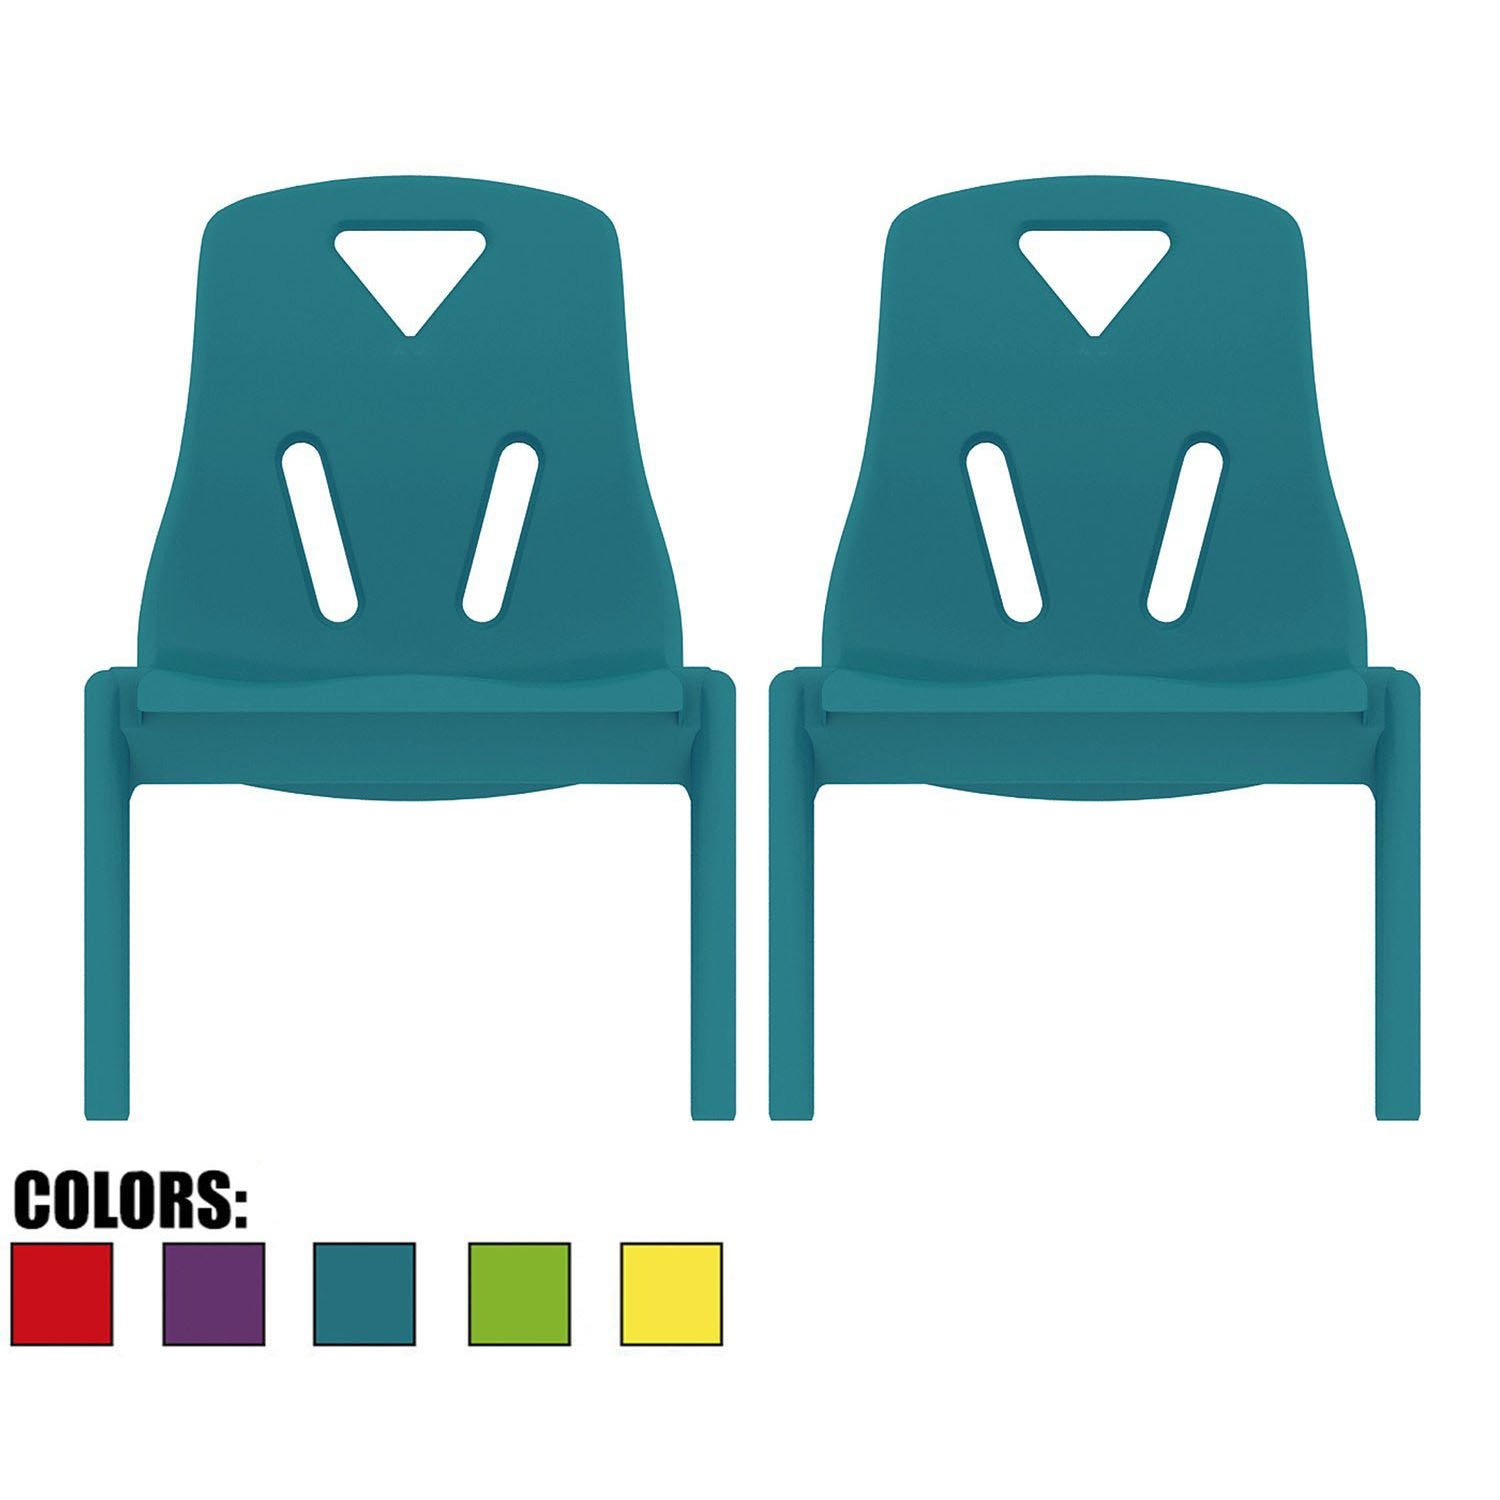 2xhome - Set of Two (2) - Teal - Kids Size Plastic Side Chair 10'' Seat Height Teal Childs Chair Childrens Room School Chairs No Arm Arms Armless Molded Plastic Seat Stackable